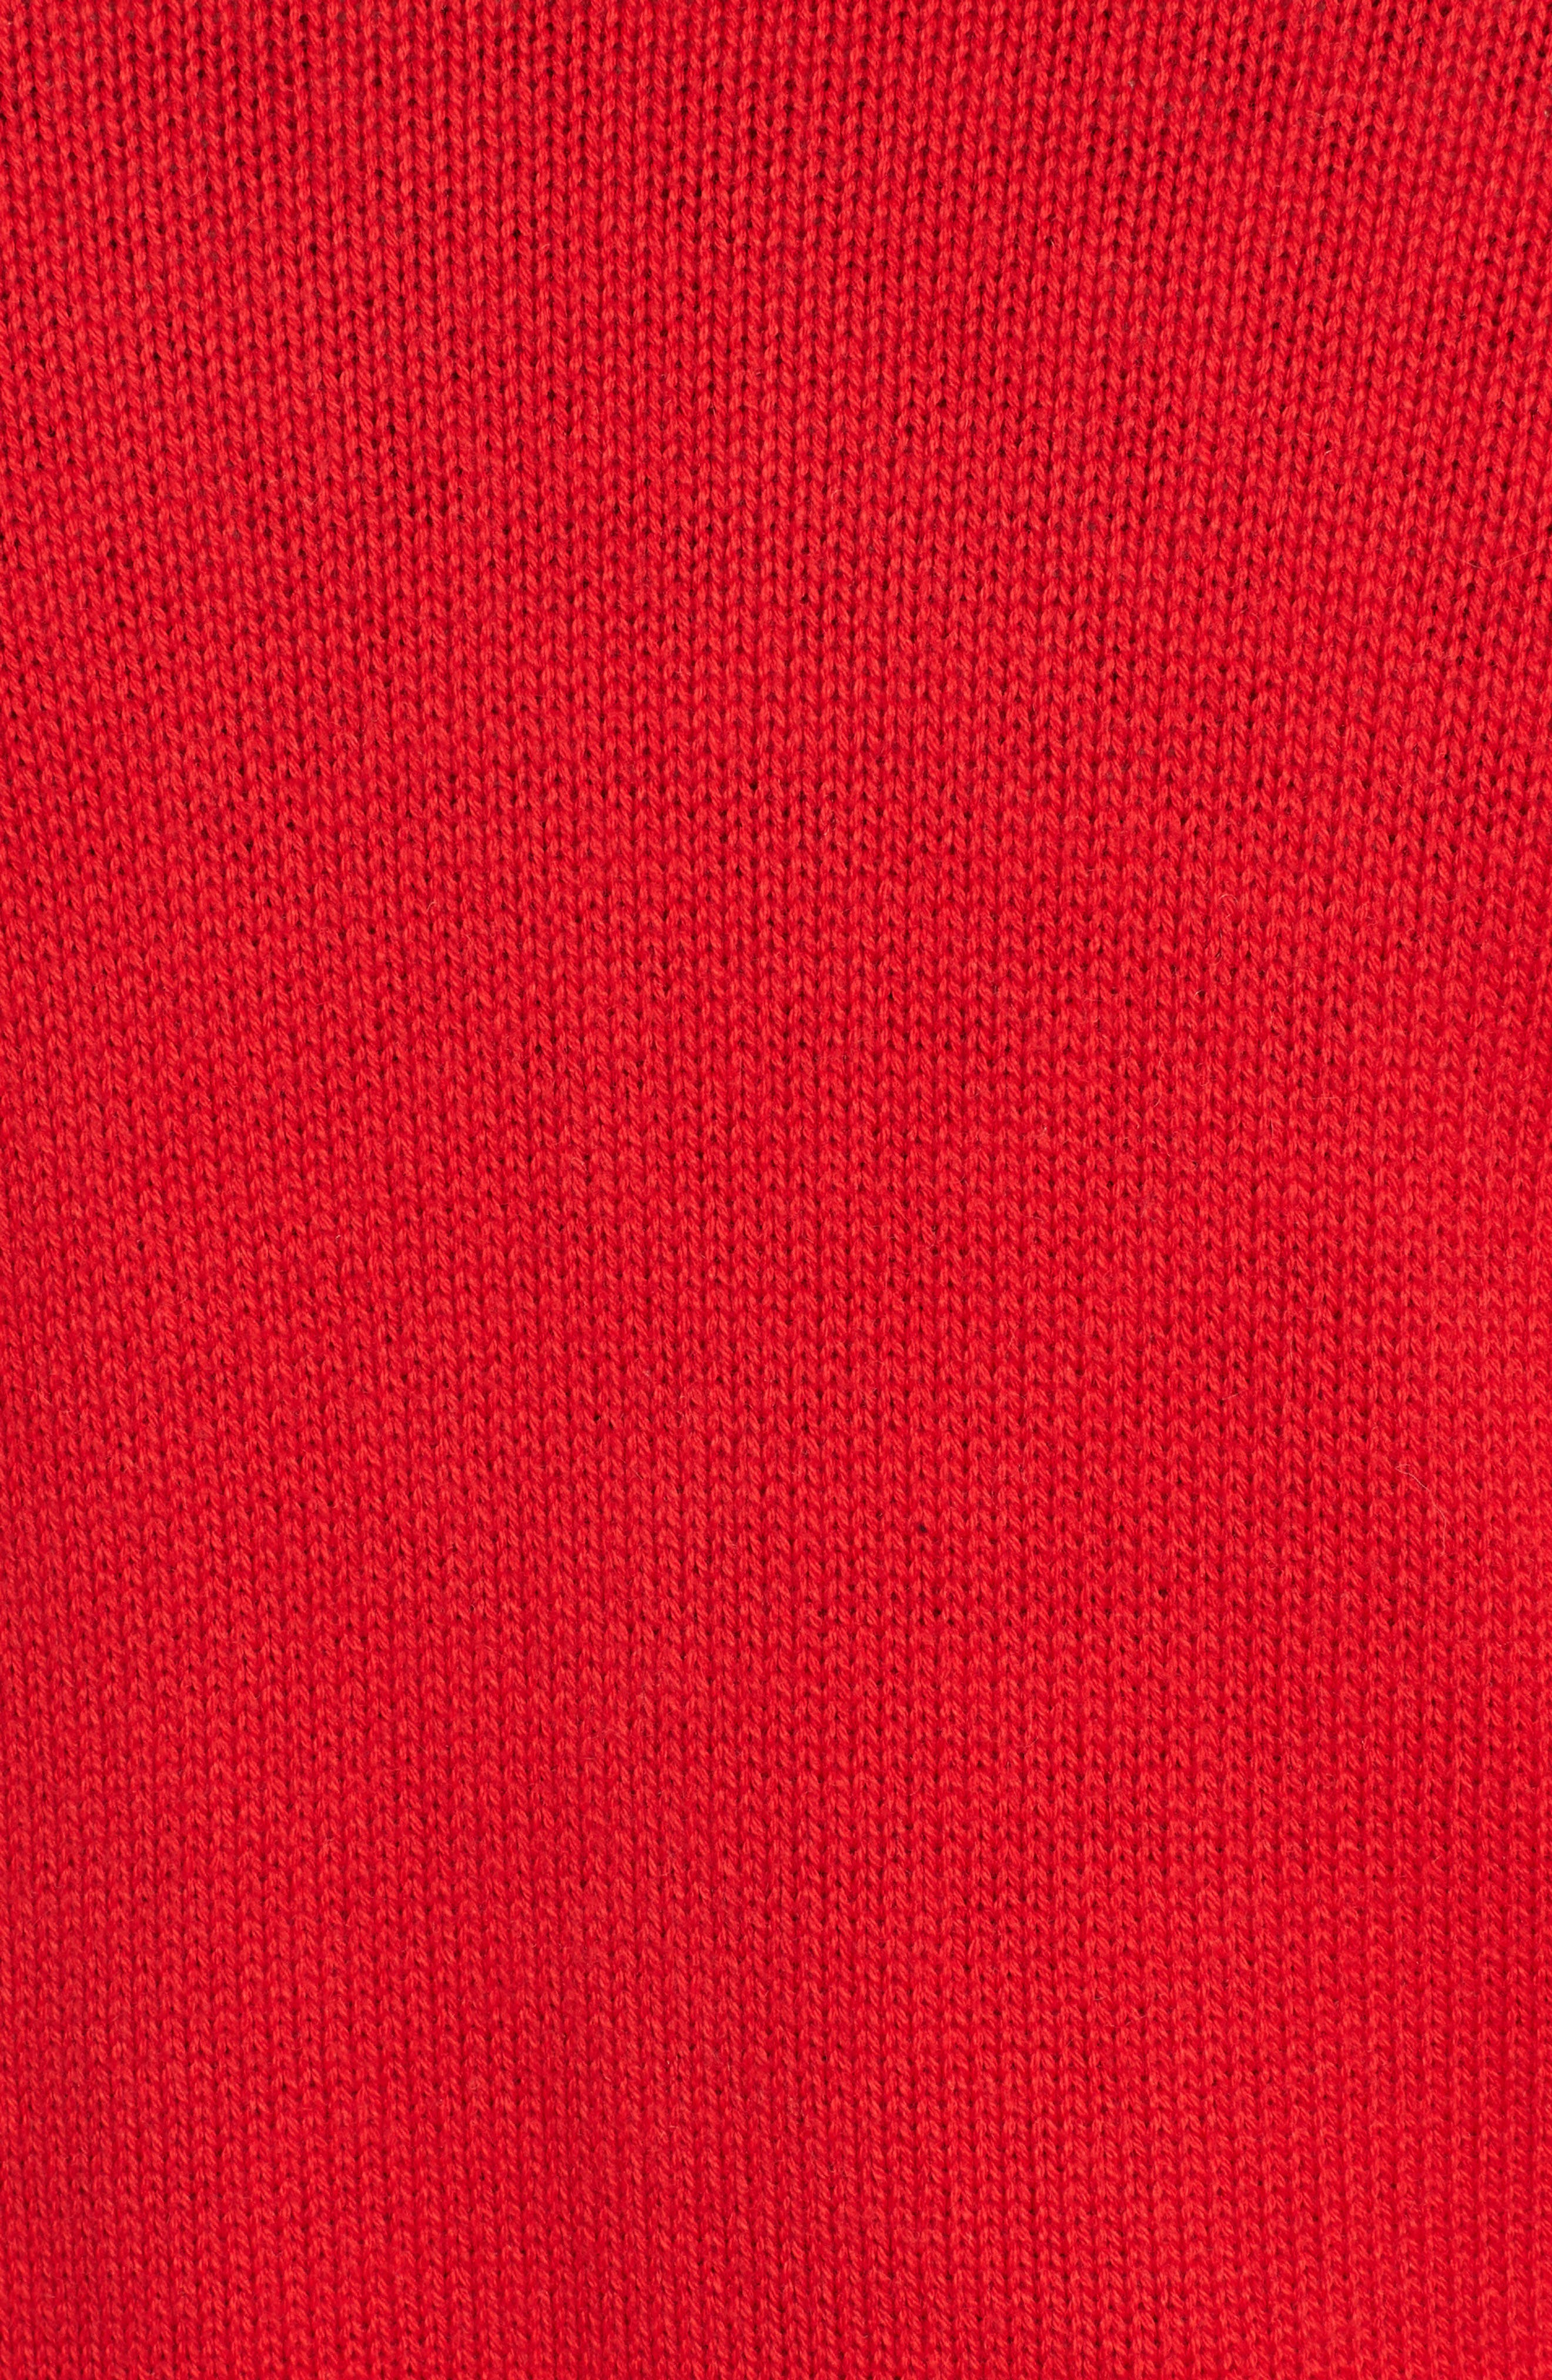 Cotton Cashmere Colorblock Cardigan,                             Alternate thumbnail 6, color,                             Red Chinoise